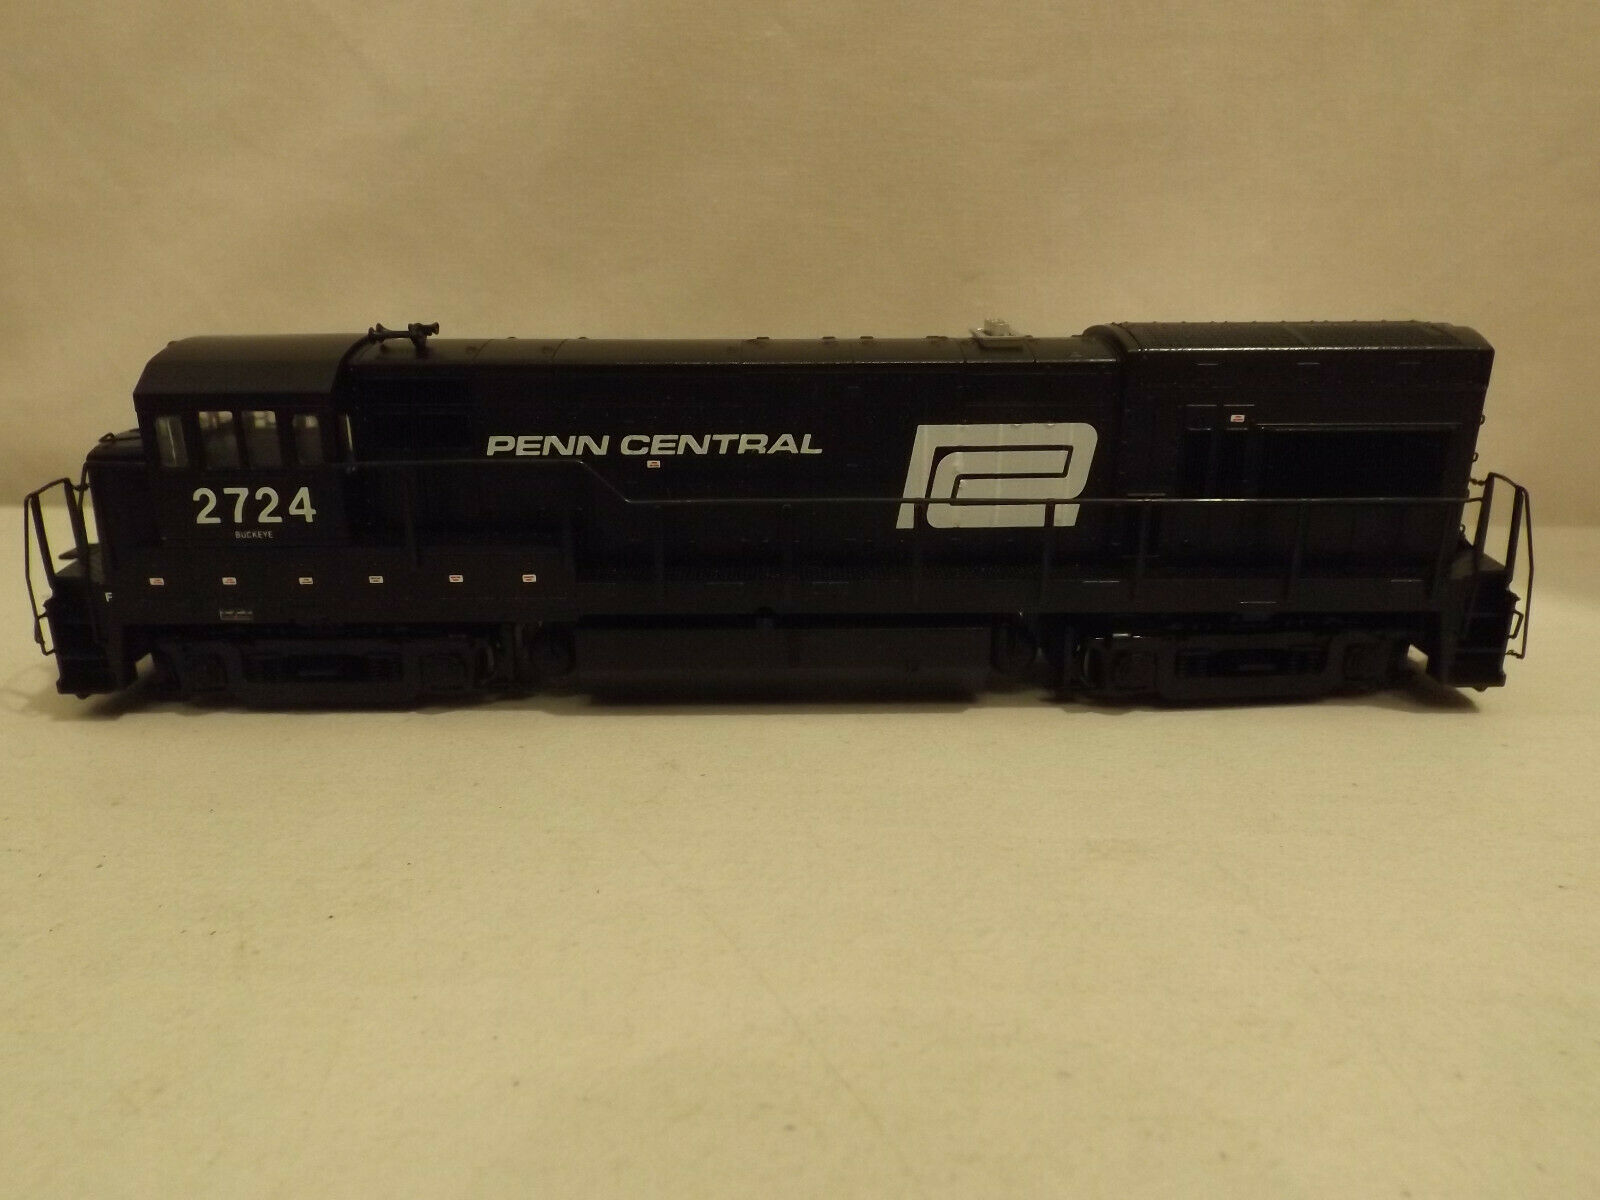 HO Atlas Penn Central  2724 U23B diesel engine in original scatola